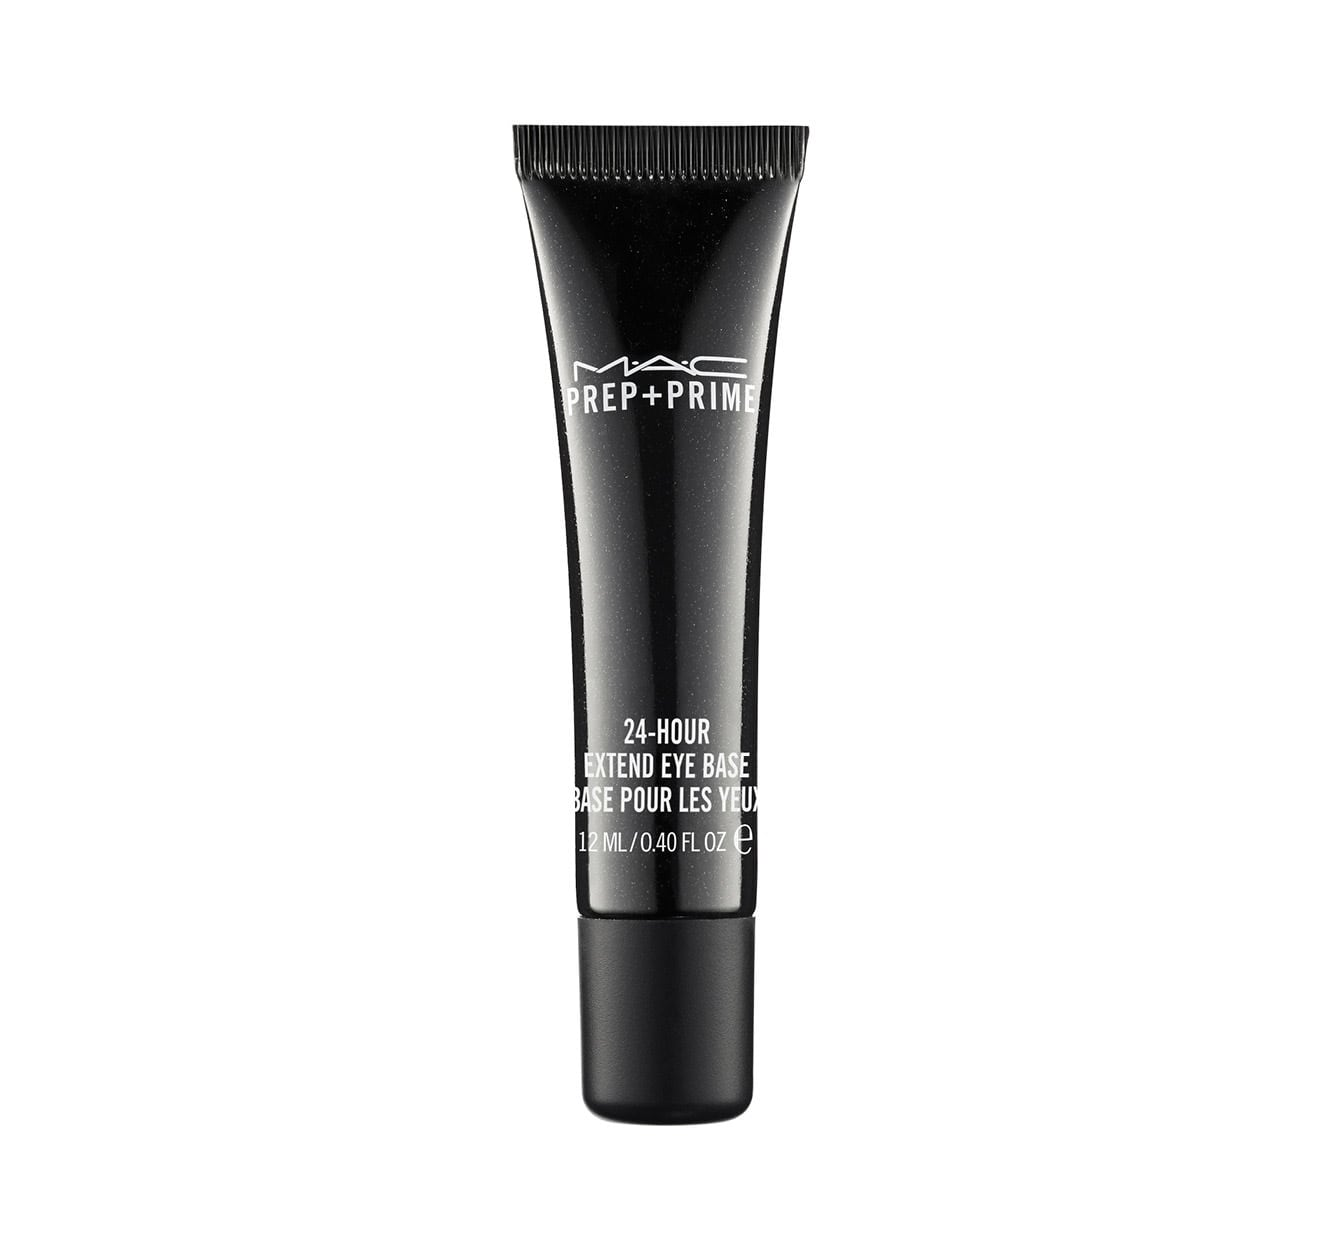 Prep + Prime 24-Hour Extend Eye Base by MAC #17